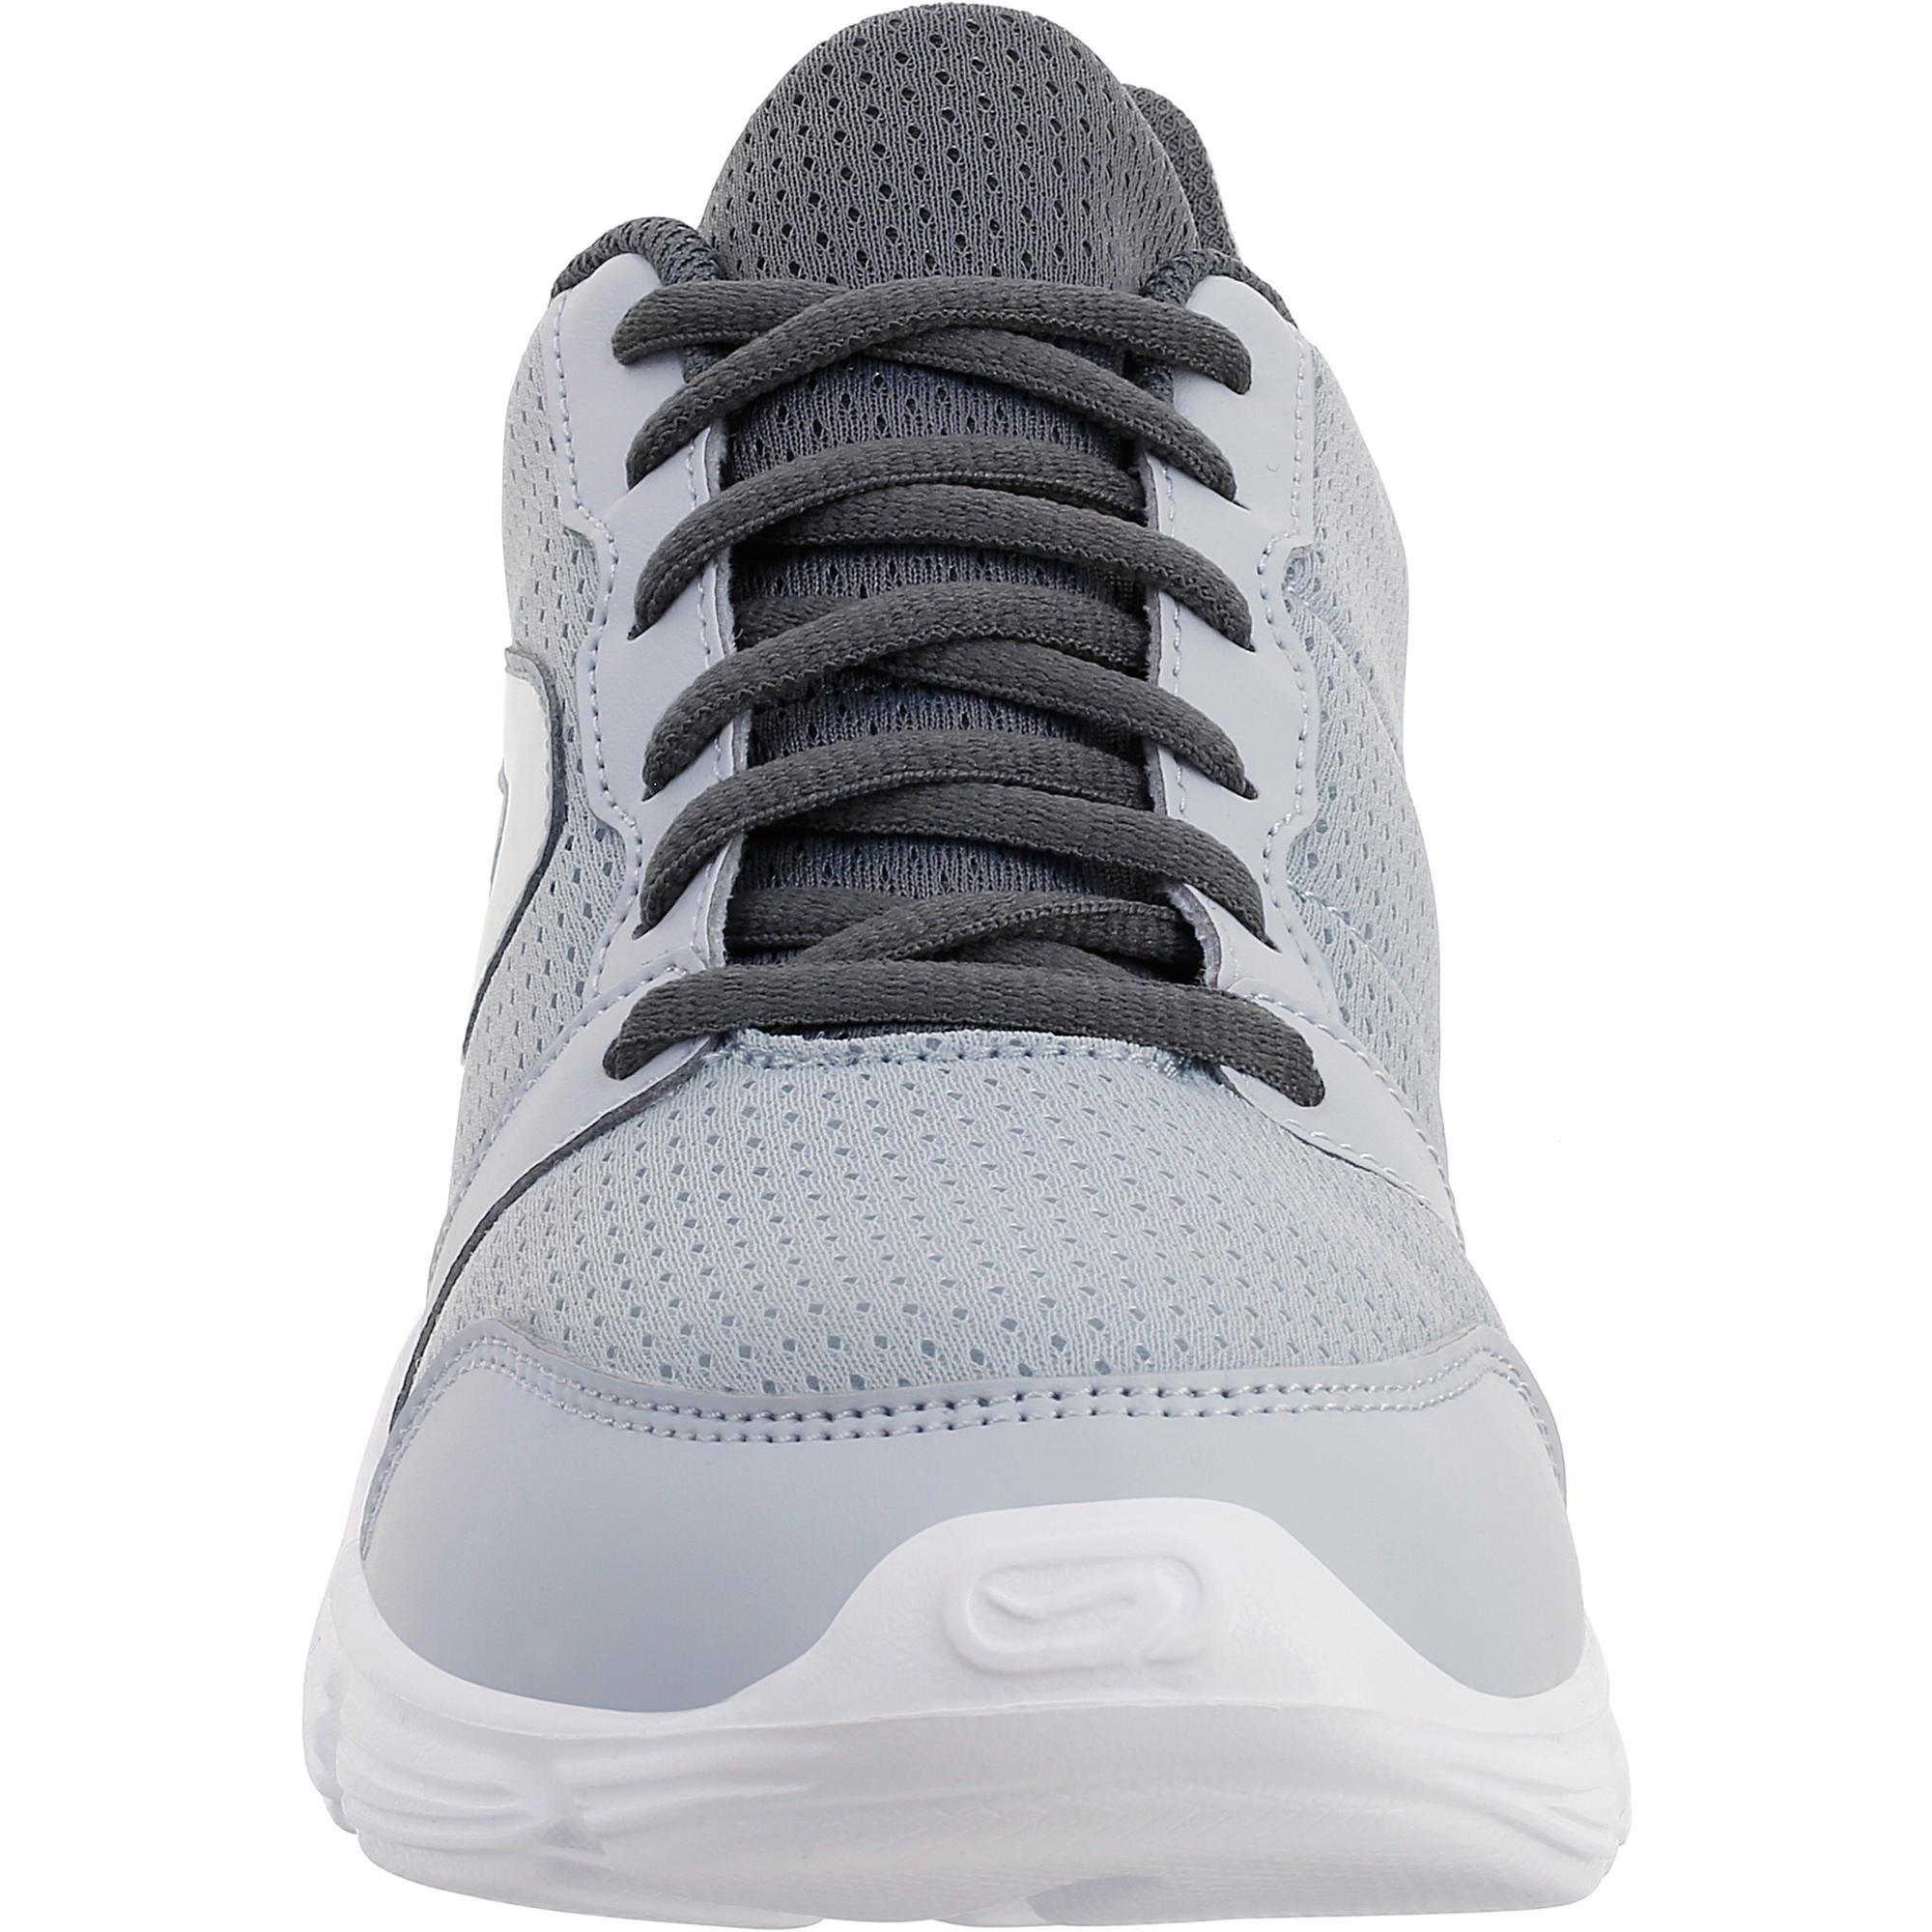 Run Femme Kalenji Decathlon Chaussures One Jogging fawq0nwR --rigid ... 51ca2816a235